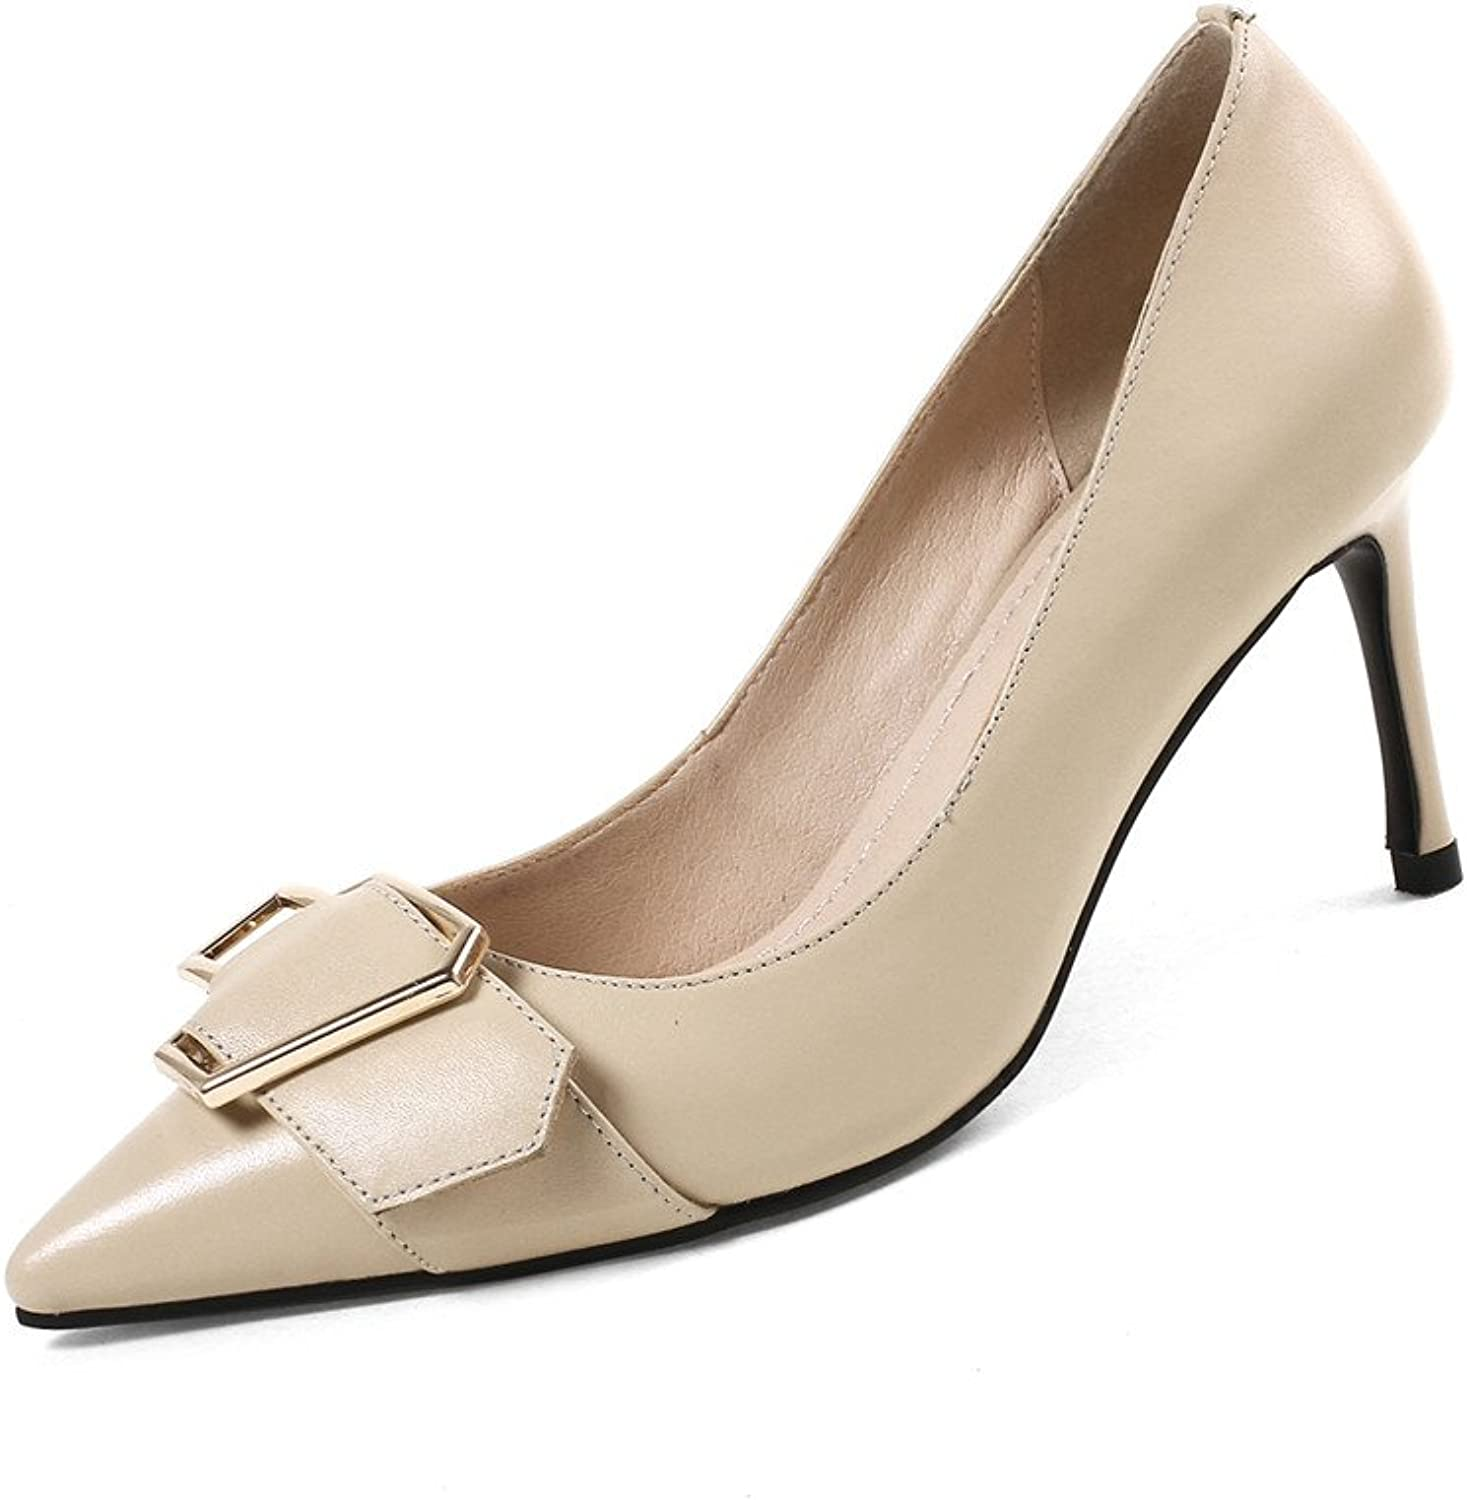 Nineseven Genuine Leather Women's Pointed Toe Hign Stiletto Heel Handmade Comfort Pumps with Buckle